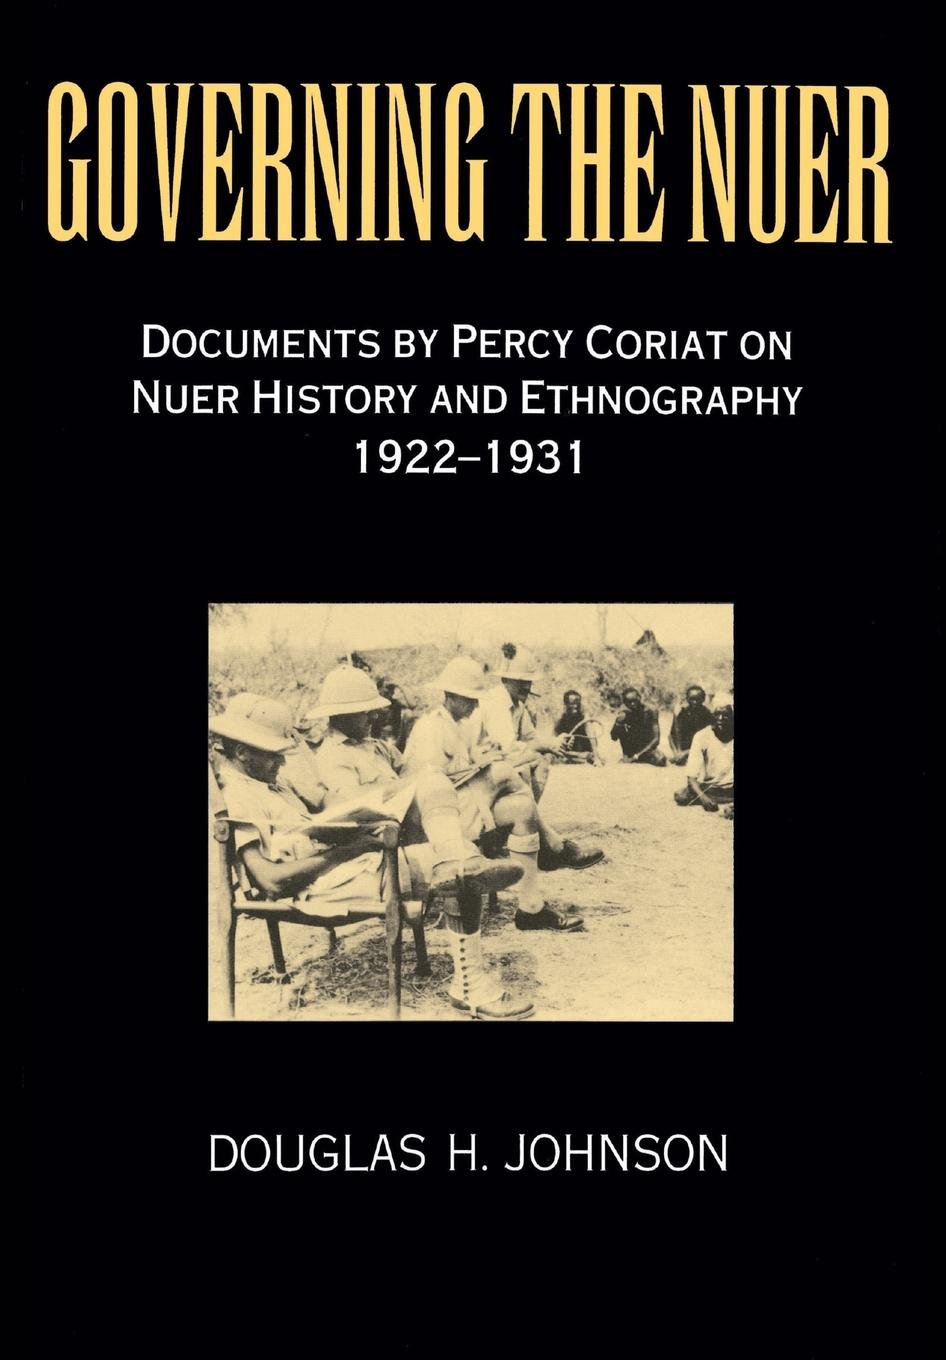 Governing the Nuer: Documents by Percy Coriat on Nuer History and Ethnography 1922-1931